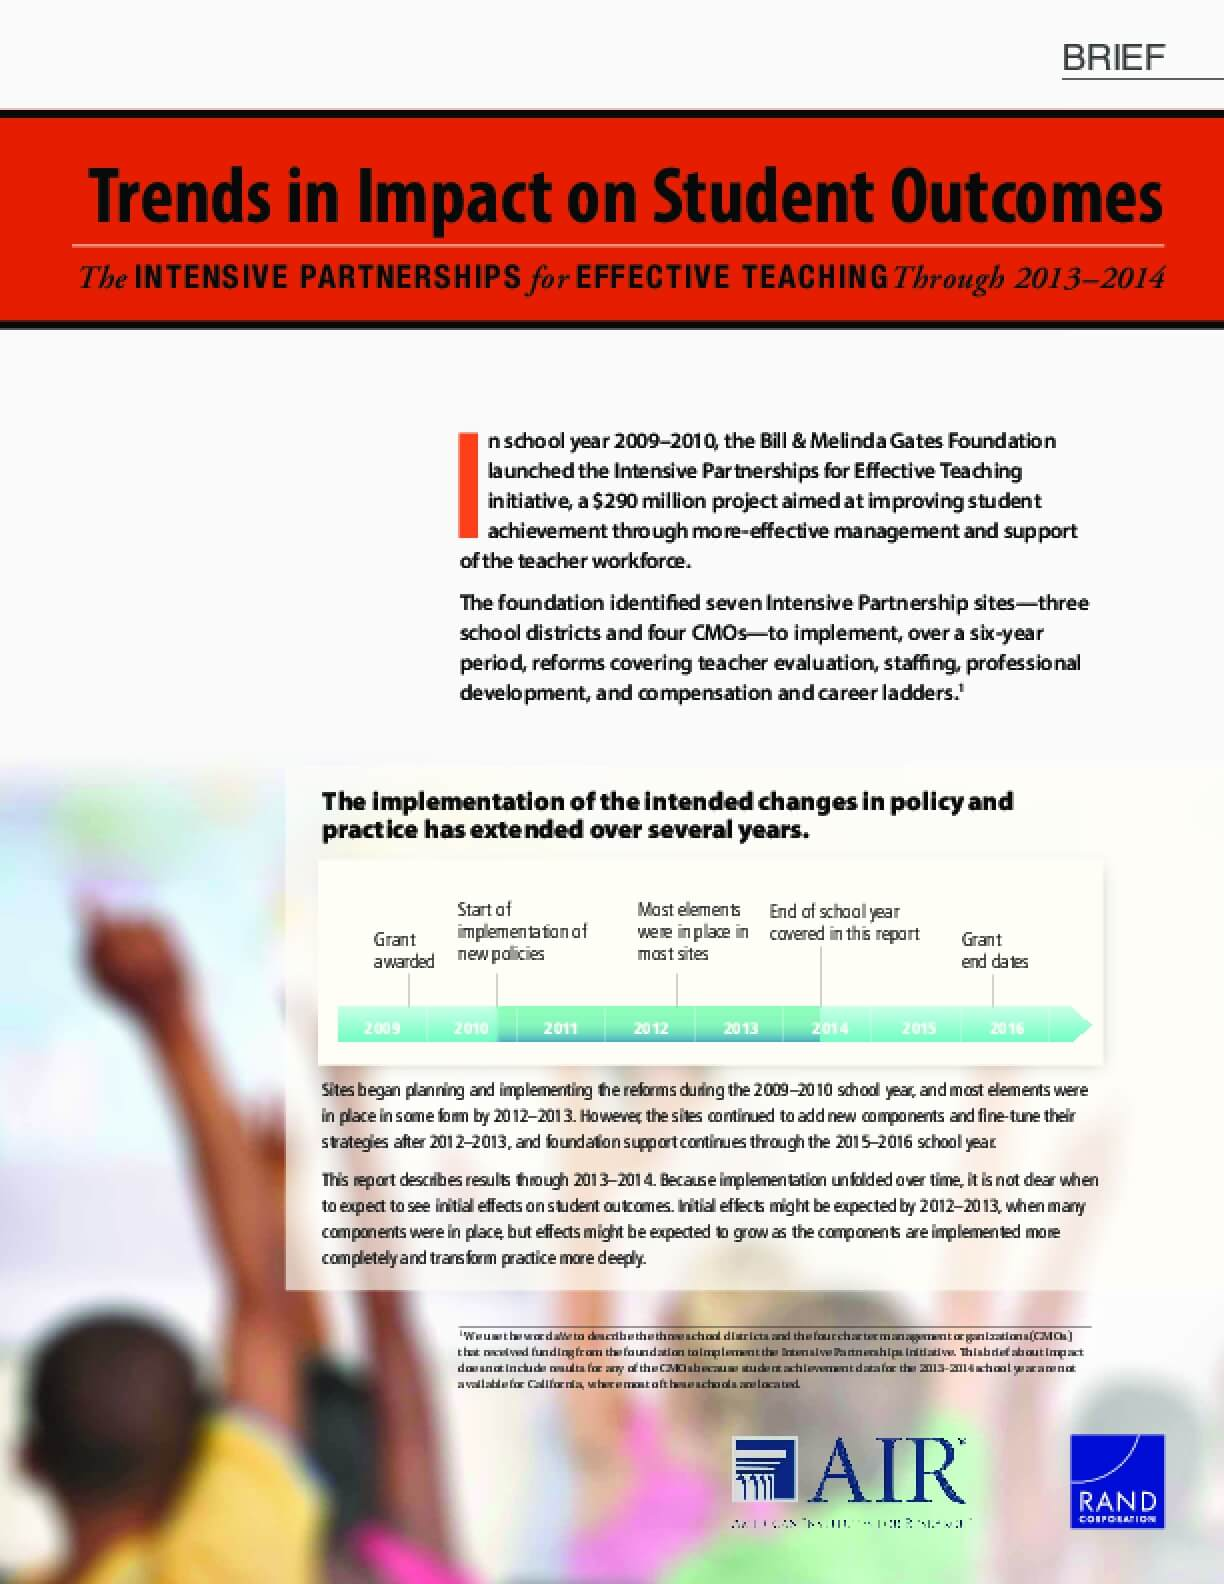 Trends in Impact on Student Outcomes: The Intensive Partnerships for Effective Teaching Through 2013–2014